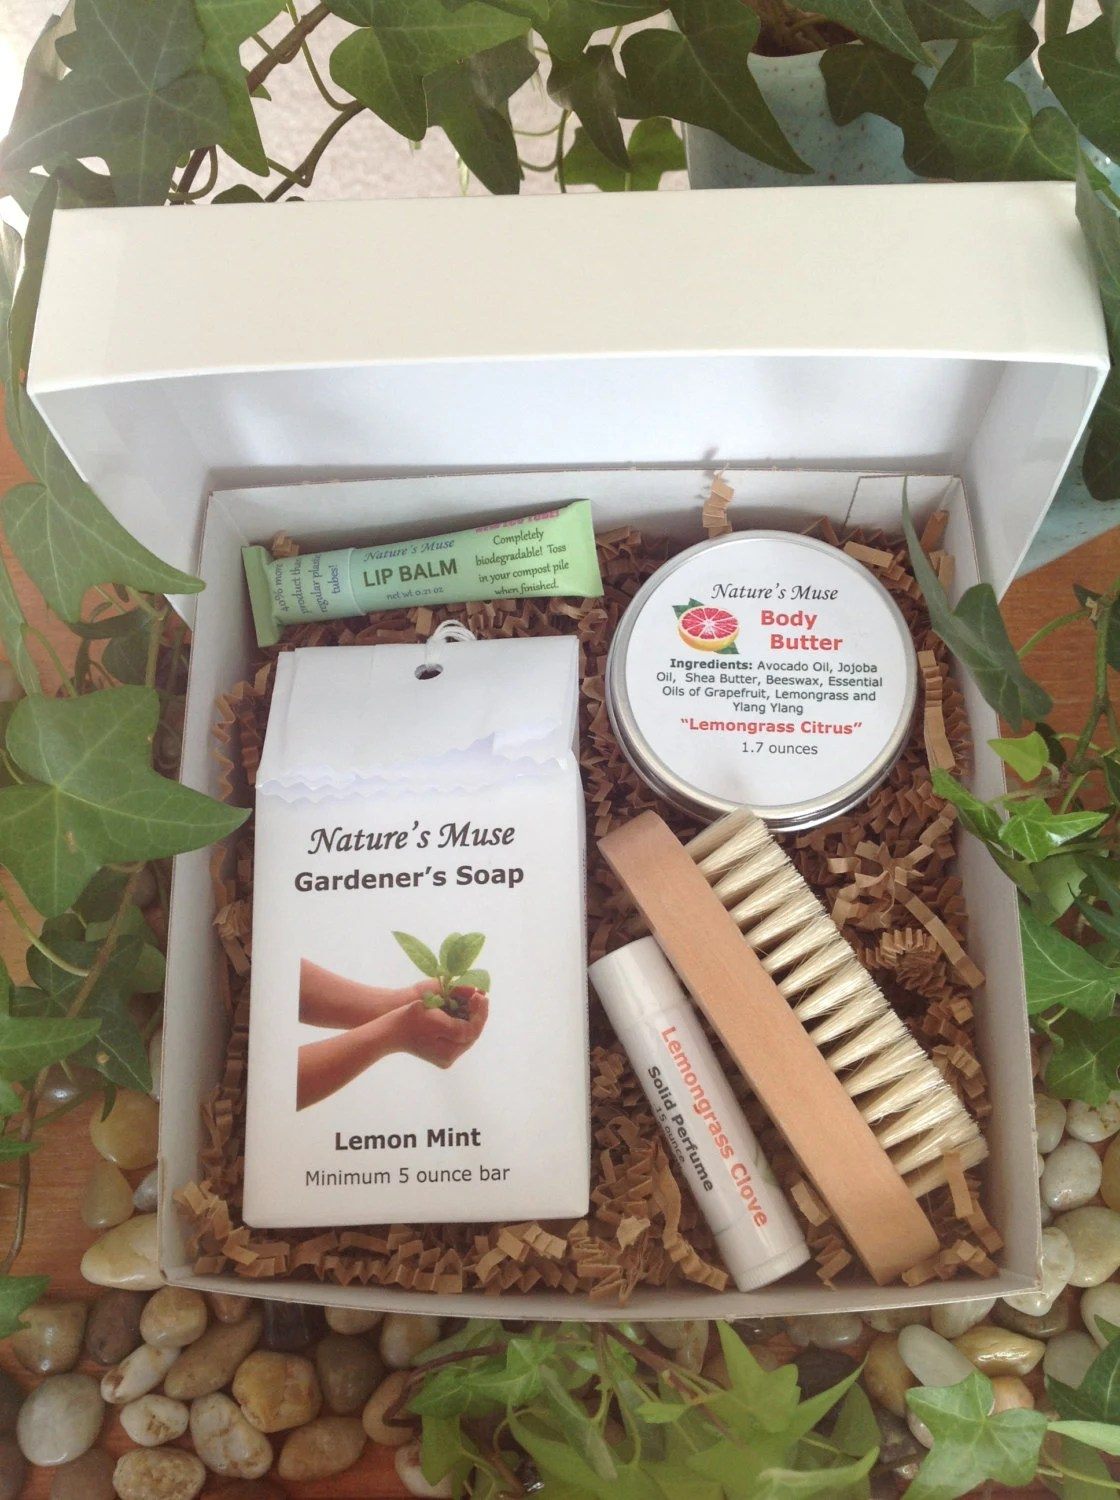 Gardener's Gift Box - Gardener's Soap, Body Butter, Lip Balm in Eco Tube, Solid Perfume and Nail Brush - naturesmuse